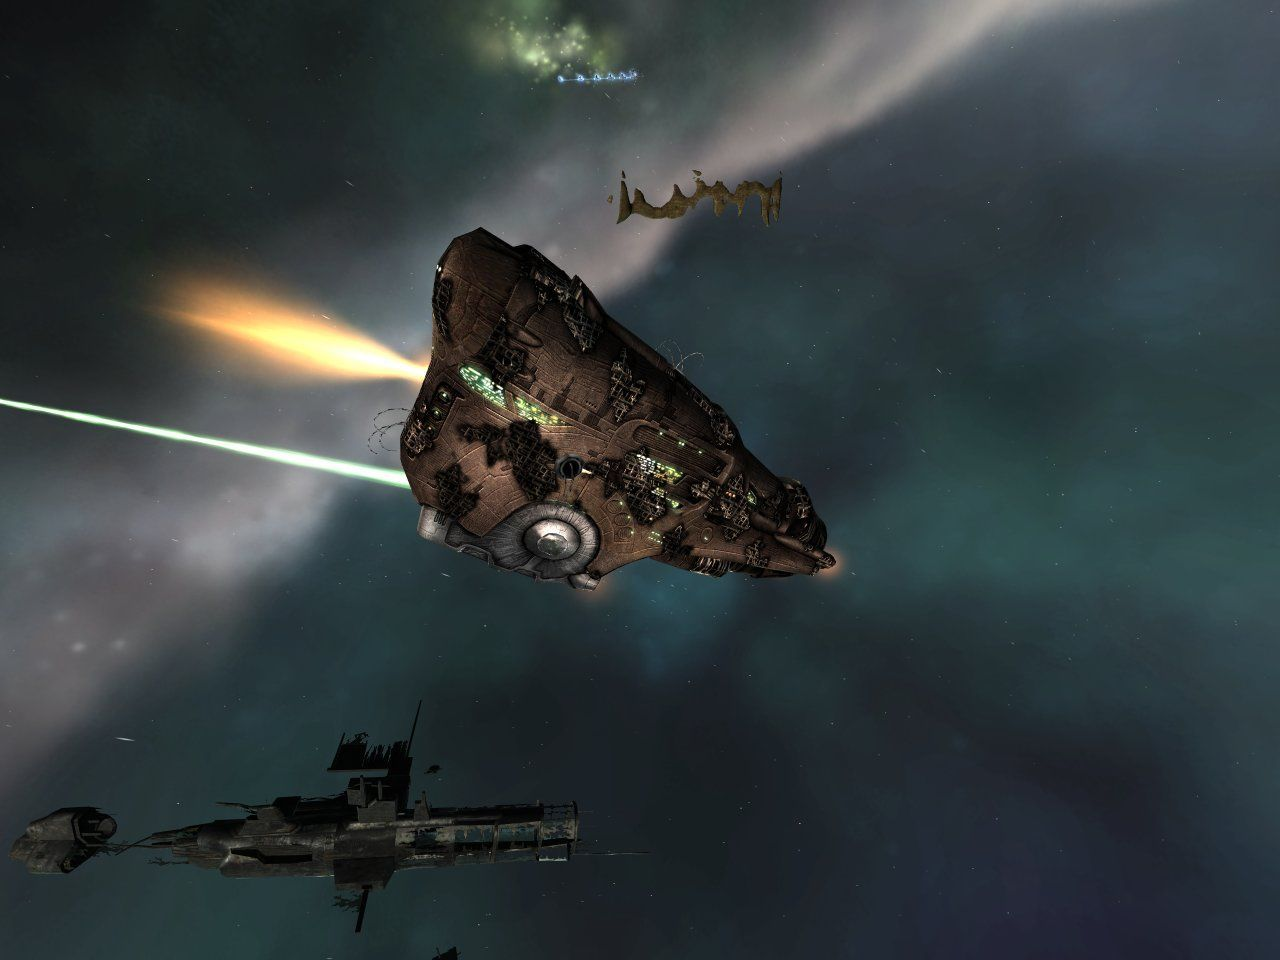 eve drone with Eve Online Ship on Martyrs Memorial Monument Inaugurated In Umm Al Qaiwain furthermore Sat 17 Nov Big Picture Activism For An Economics Of Happines 49595 also Eve Online Ship likewise Soe Reinforcements And Ui Fine Tuning likewise Military Land Drones.